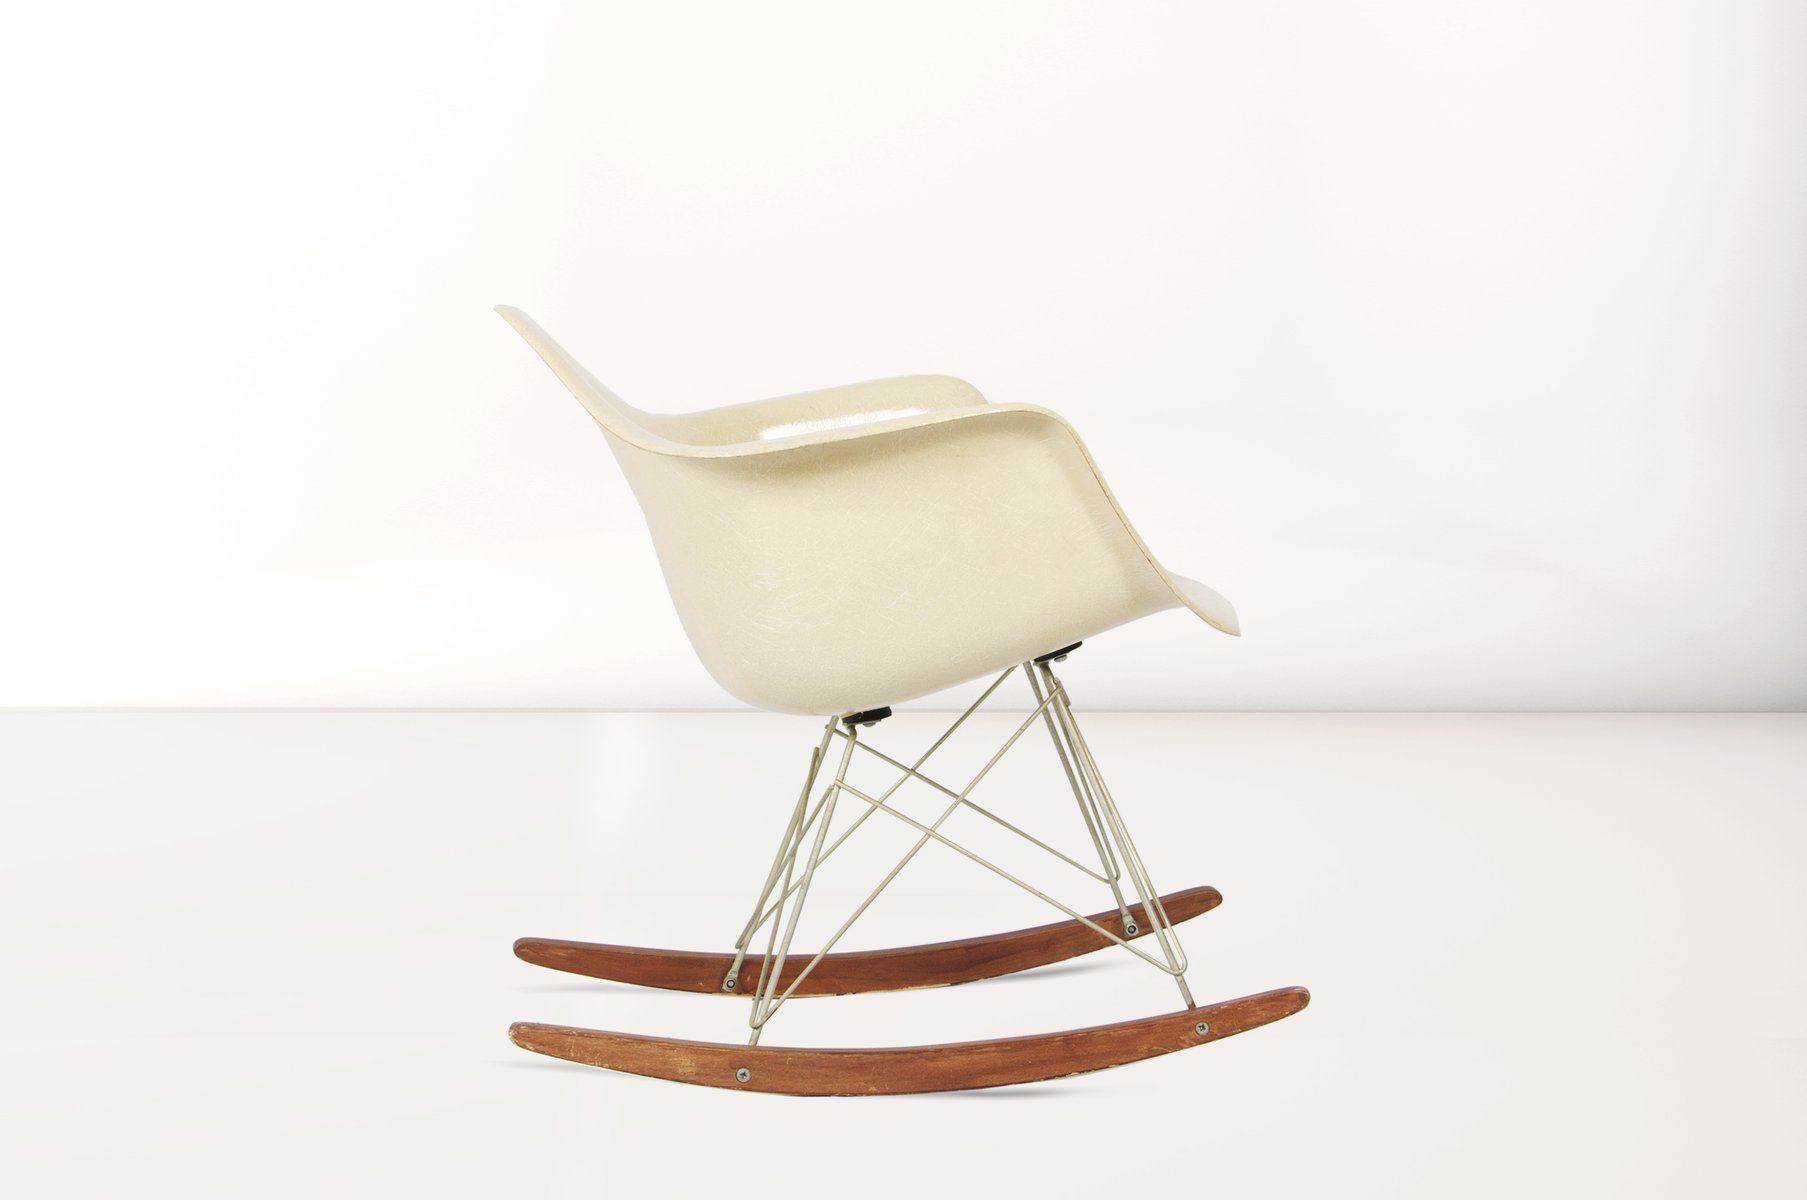 Charles eames chaise lounge at stdibs also charles and for Chaises rar charles eames